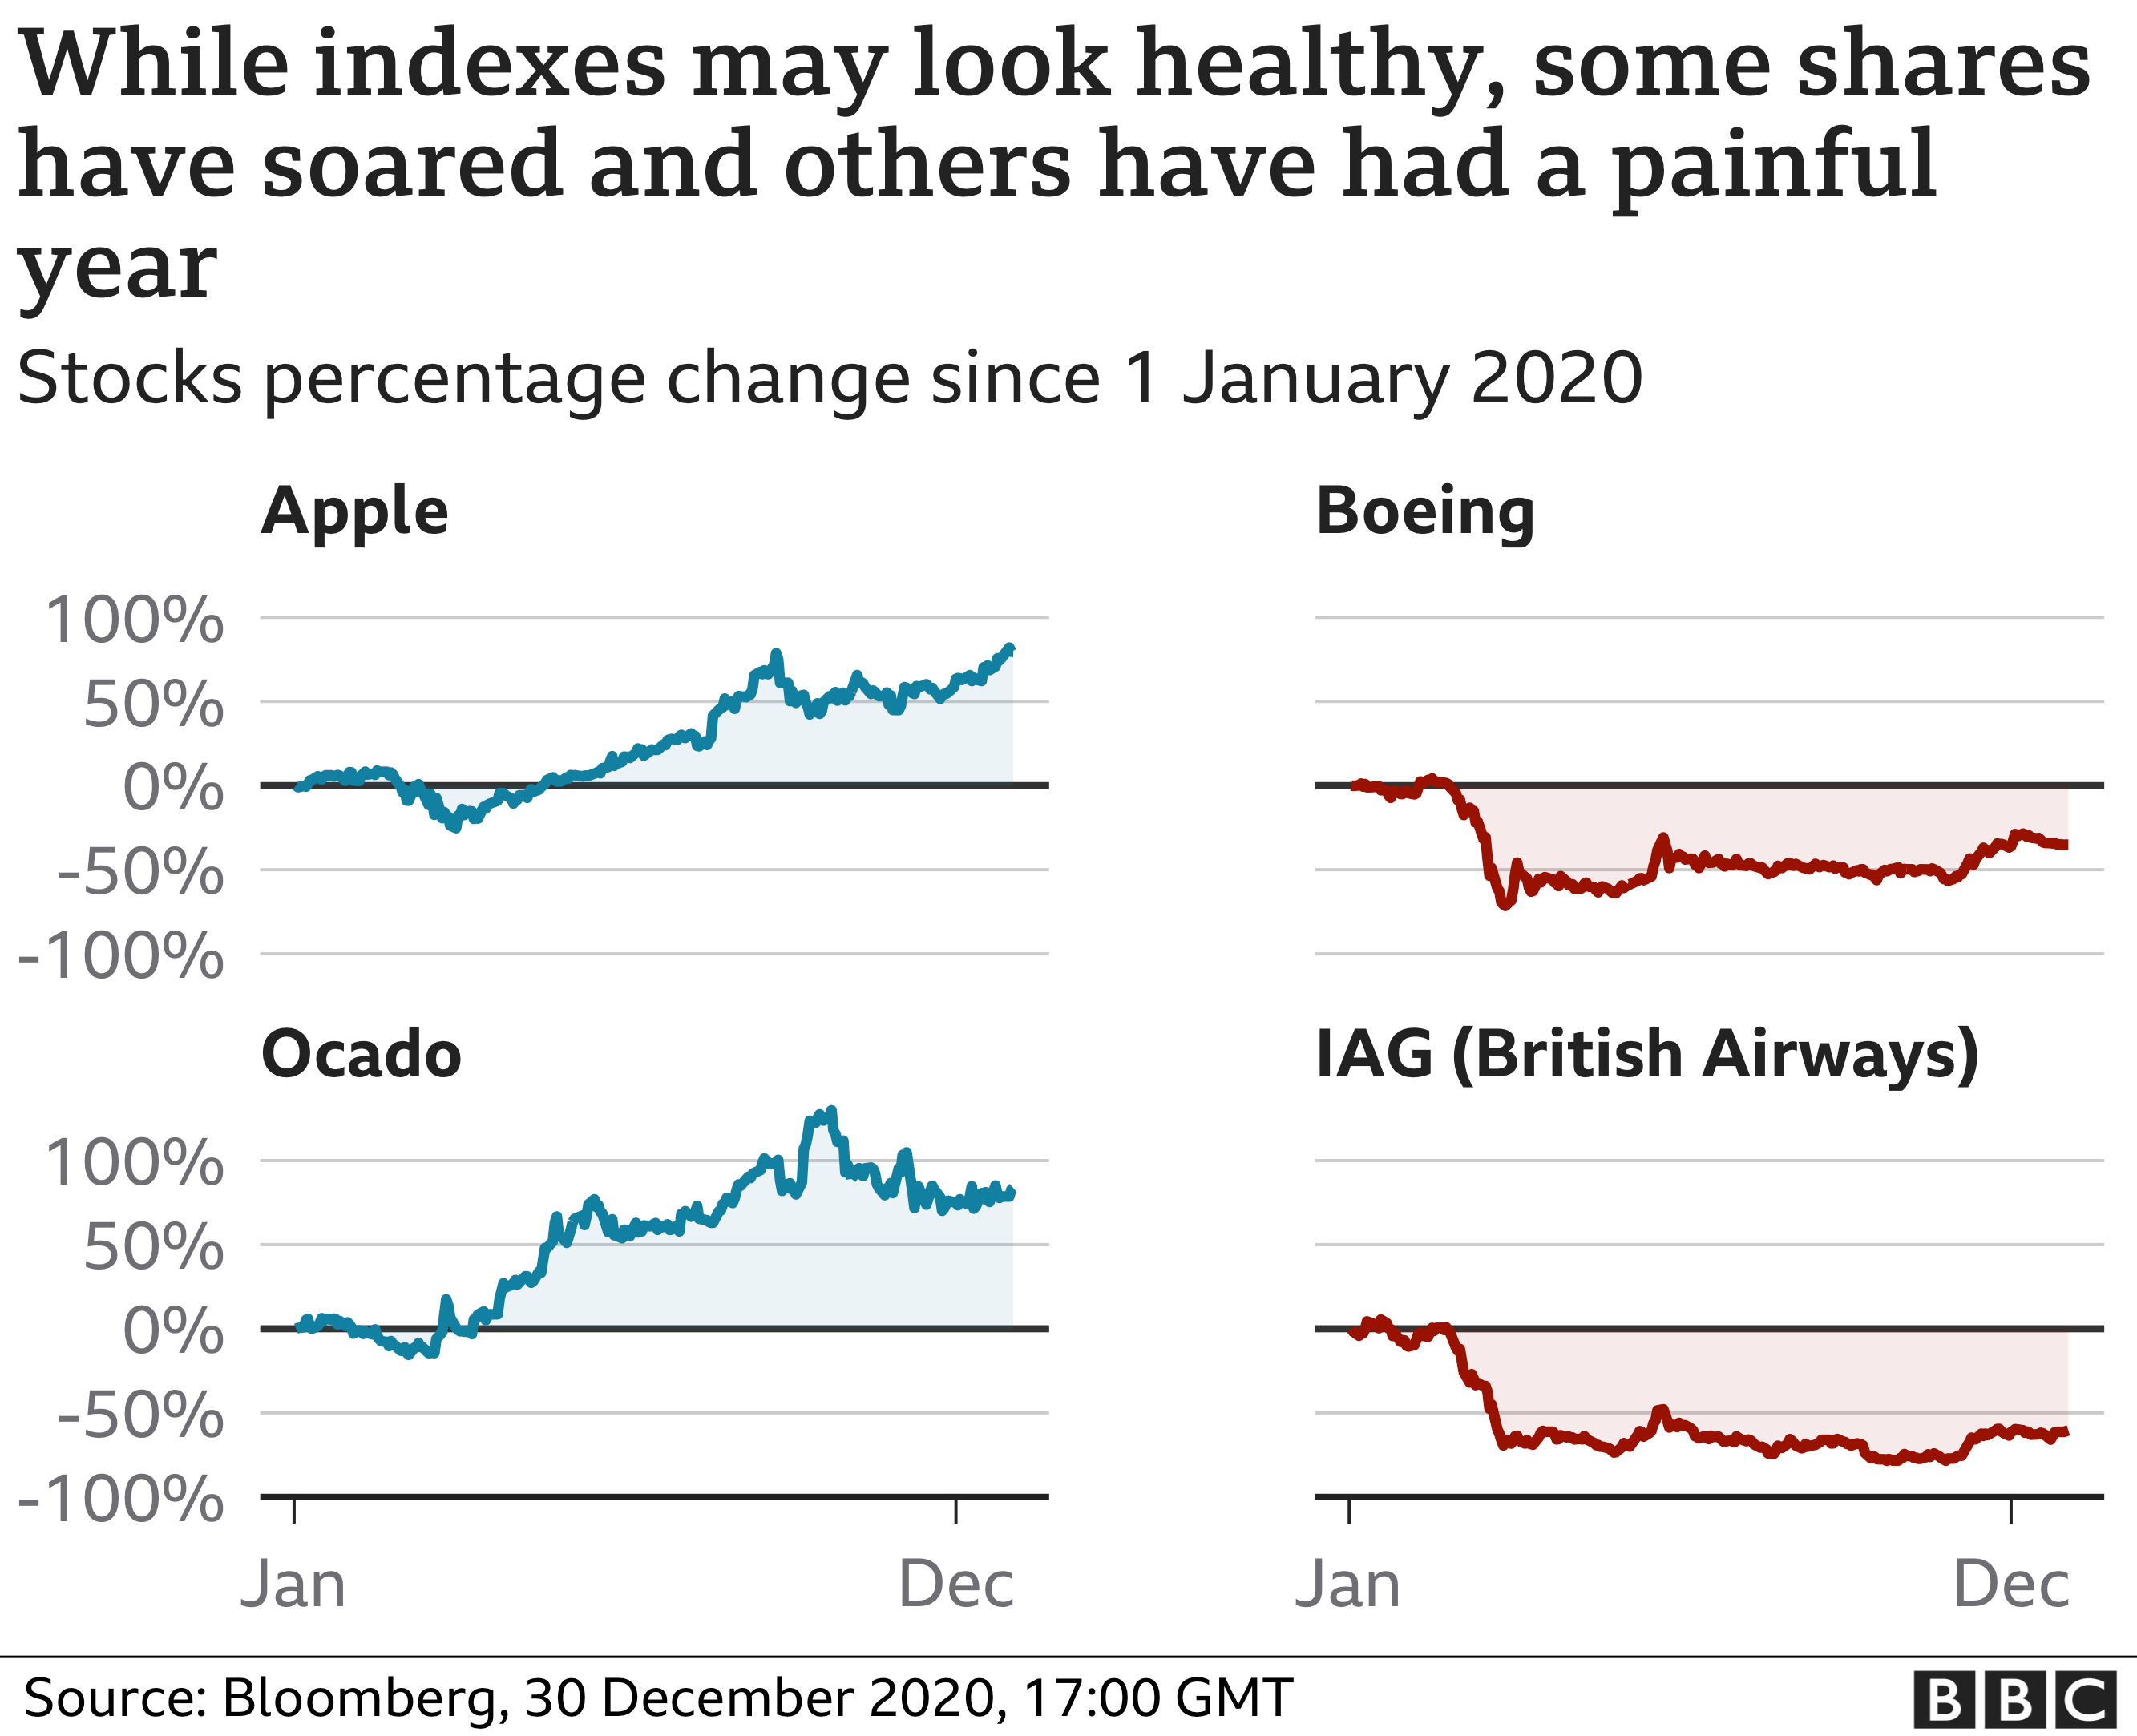 Shares of top and bottom performers for US and UK indexes